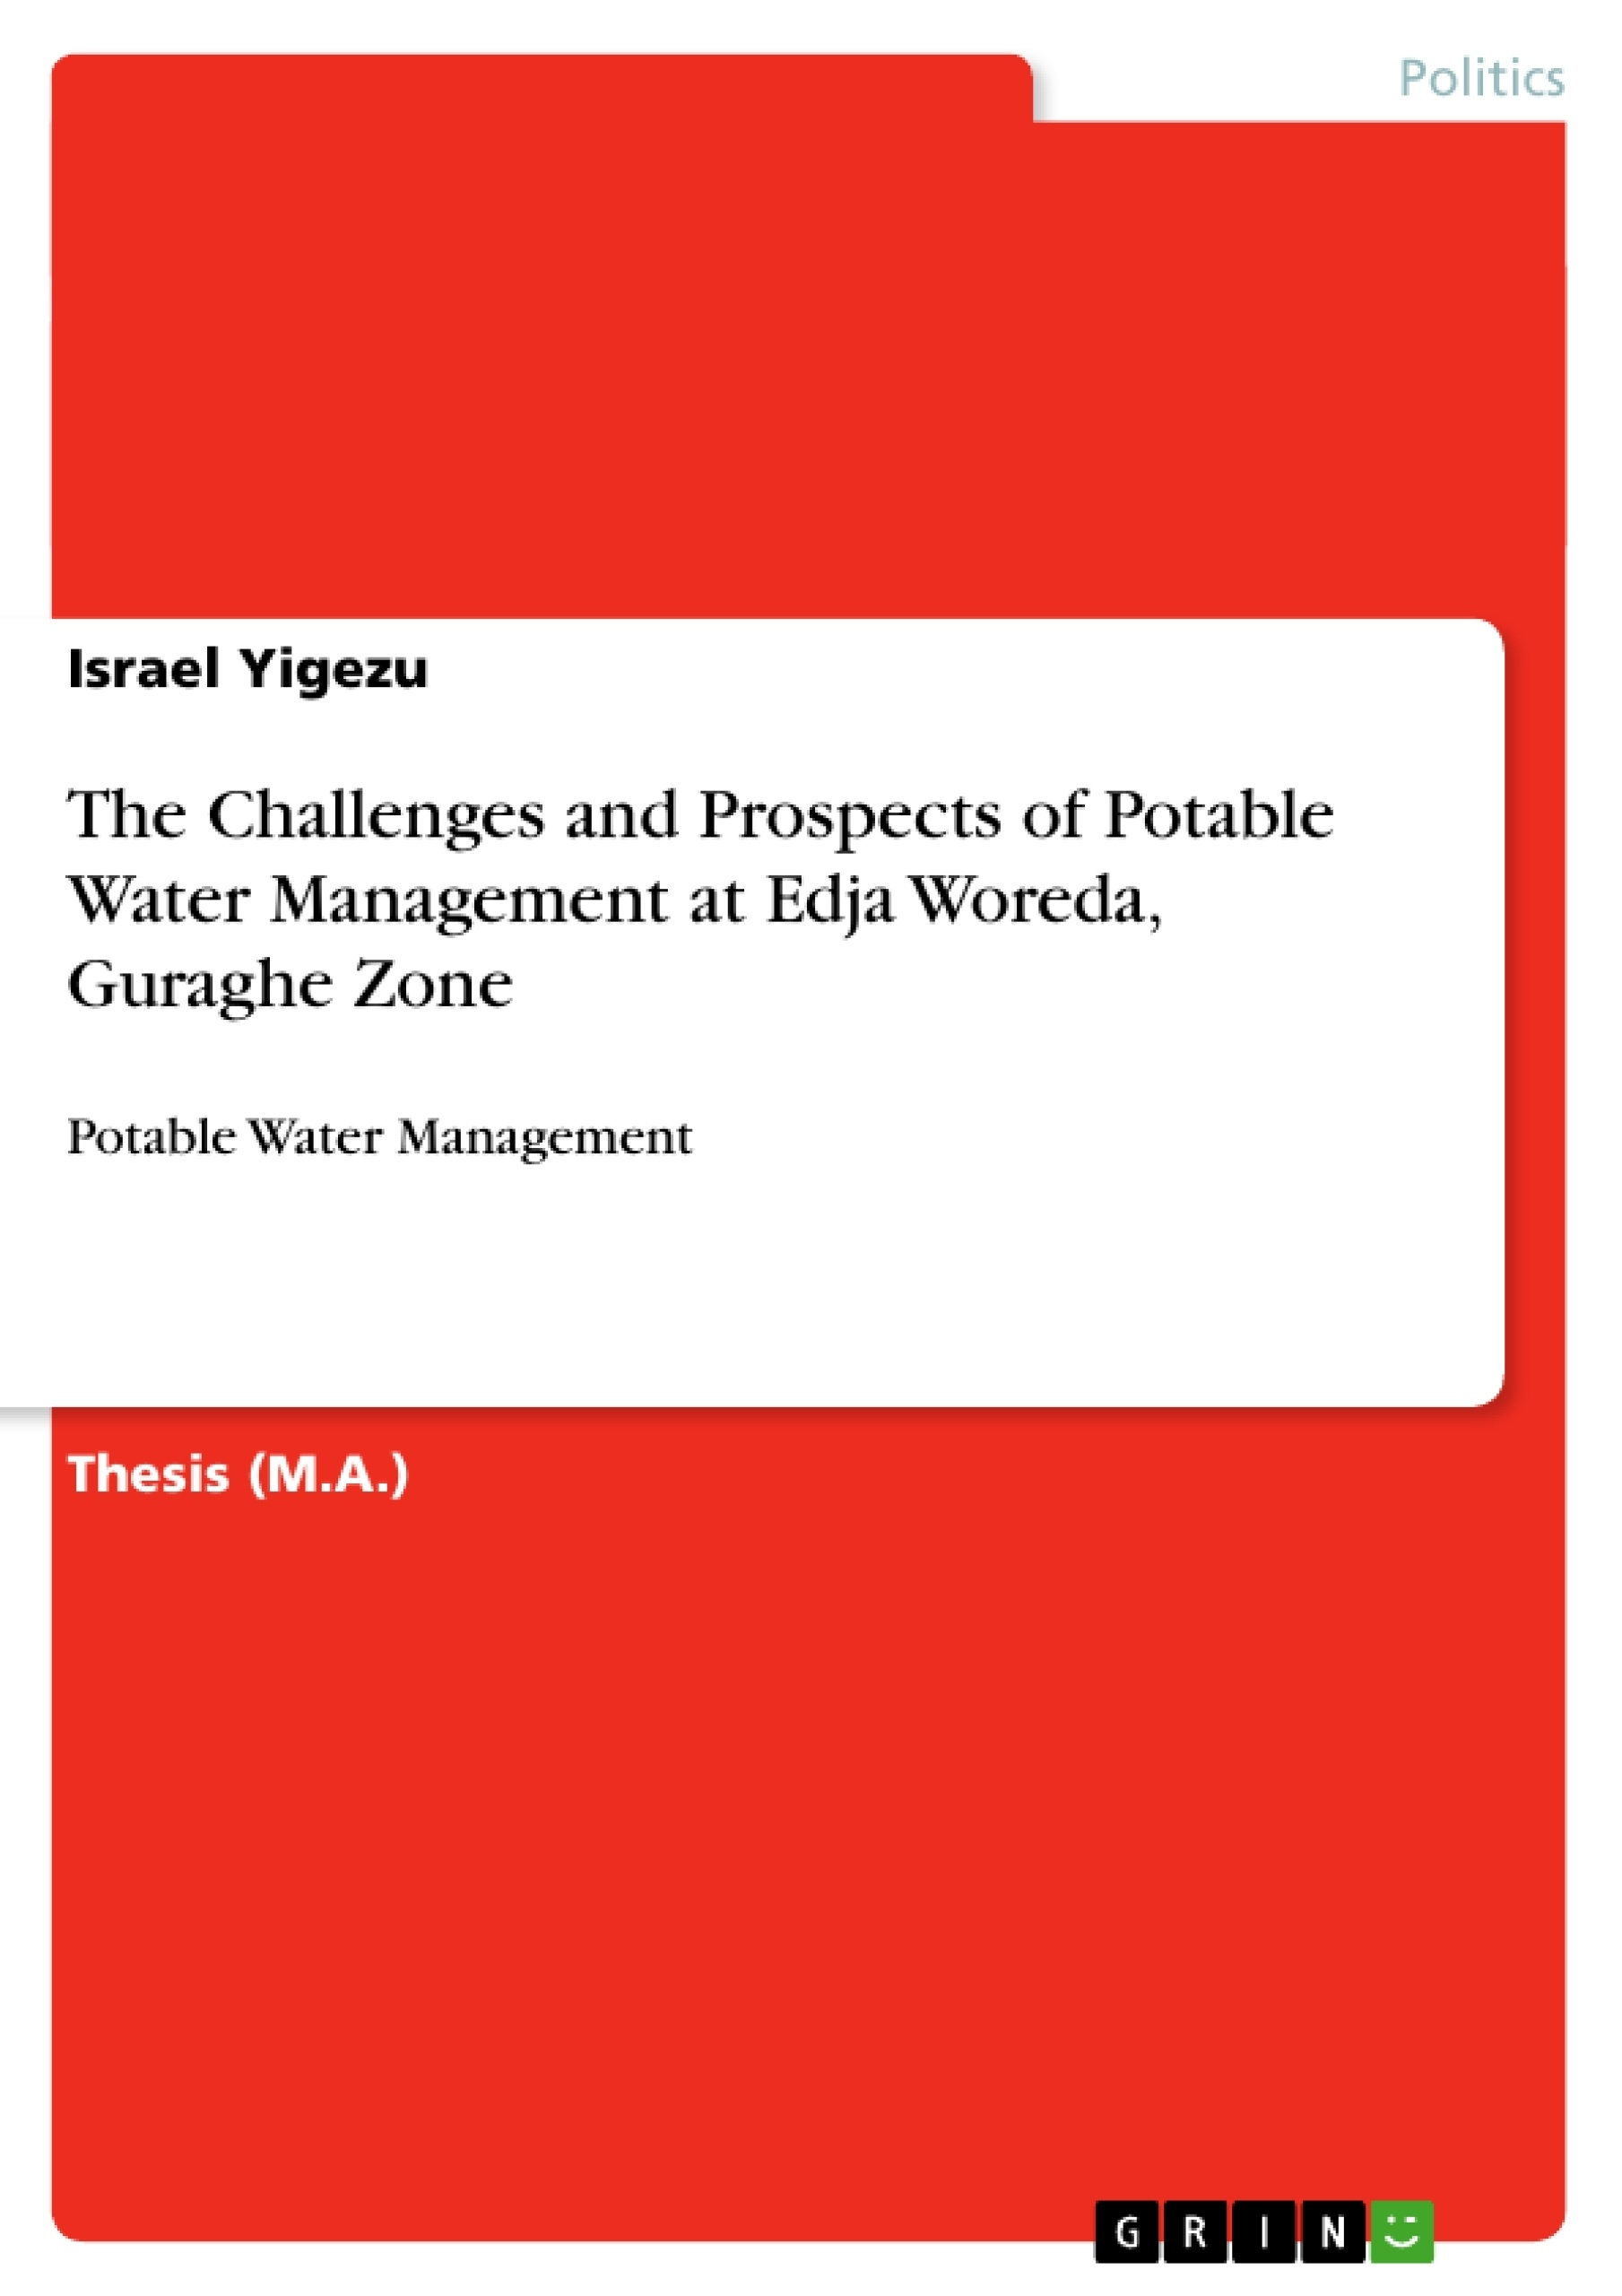 Title: The Challenges and Prospects of Potable Water Management at Edja Woreda, Guraghe Zone